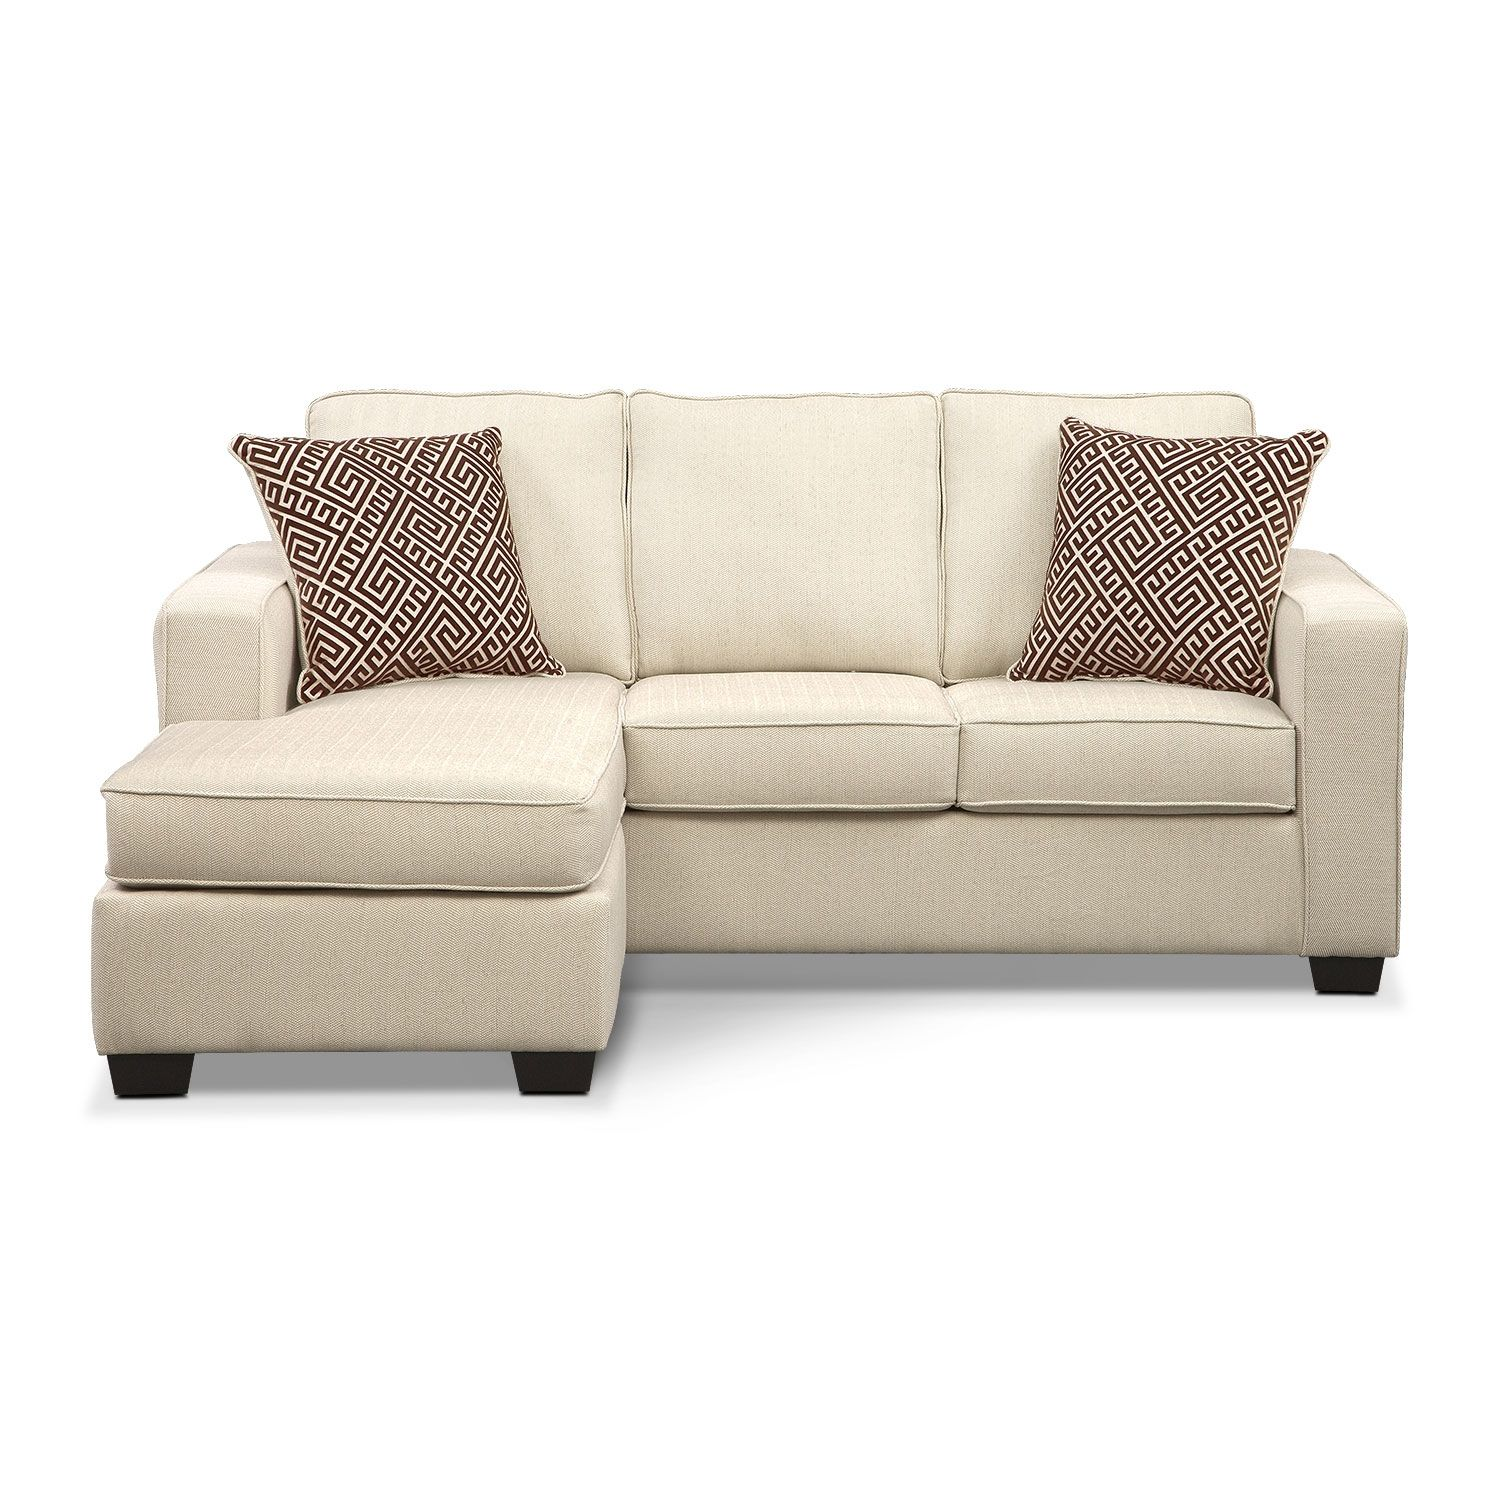 Best Sterling Beige Queen Memory Foam Sleeper Sofa W Chaise 400 x 300